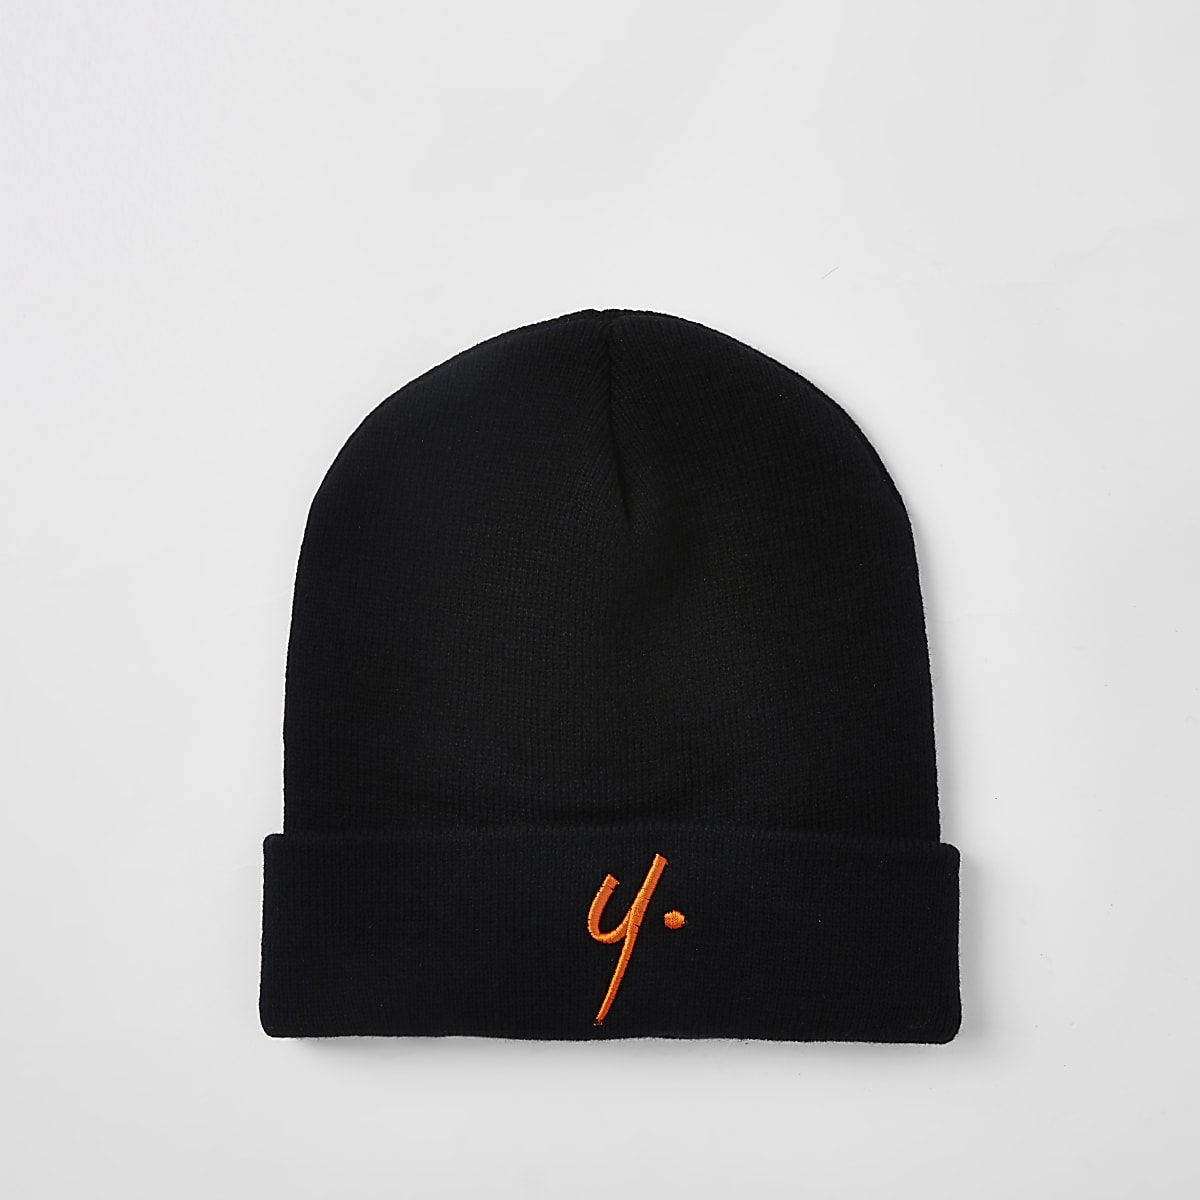 Year Dot black knit beanie